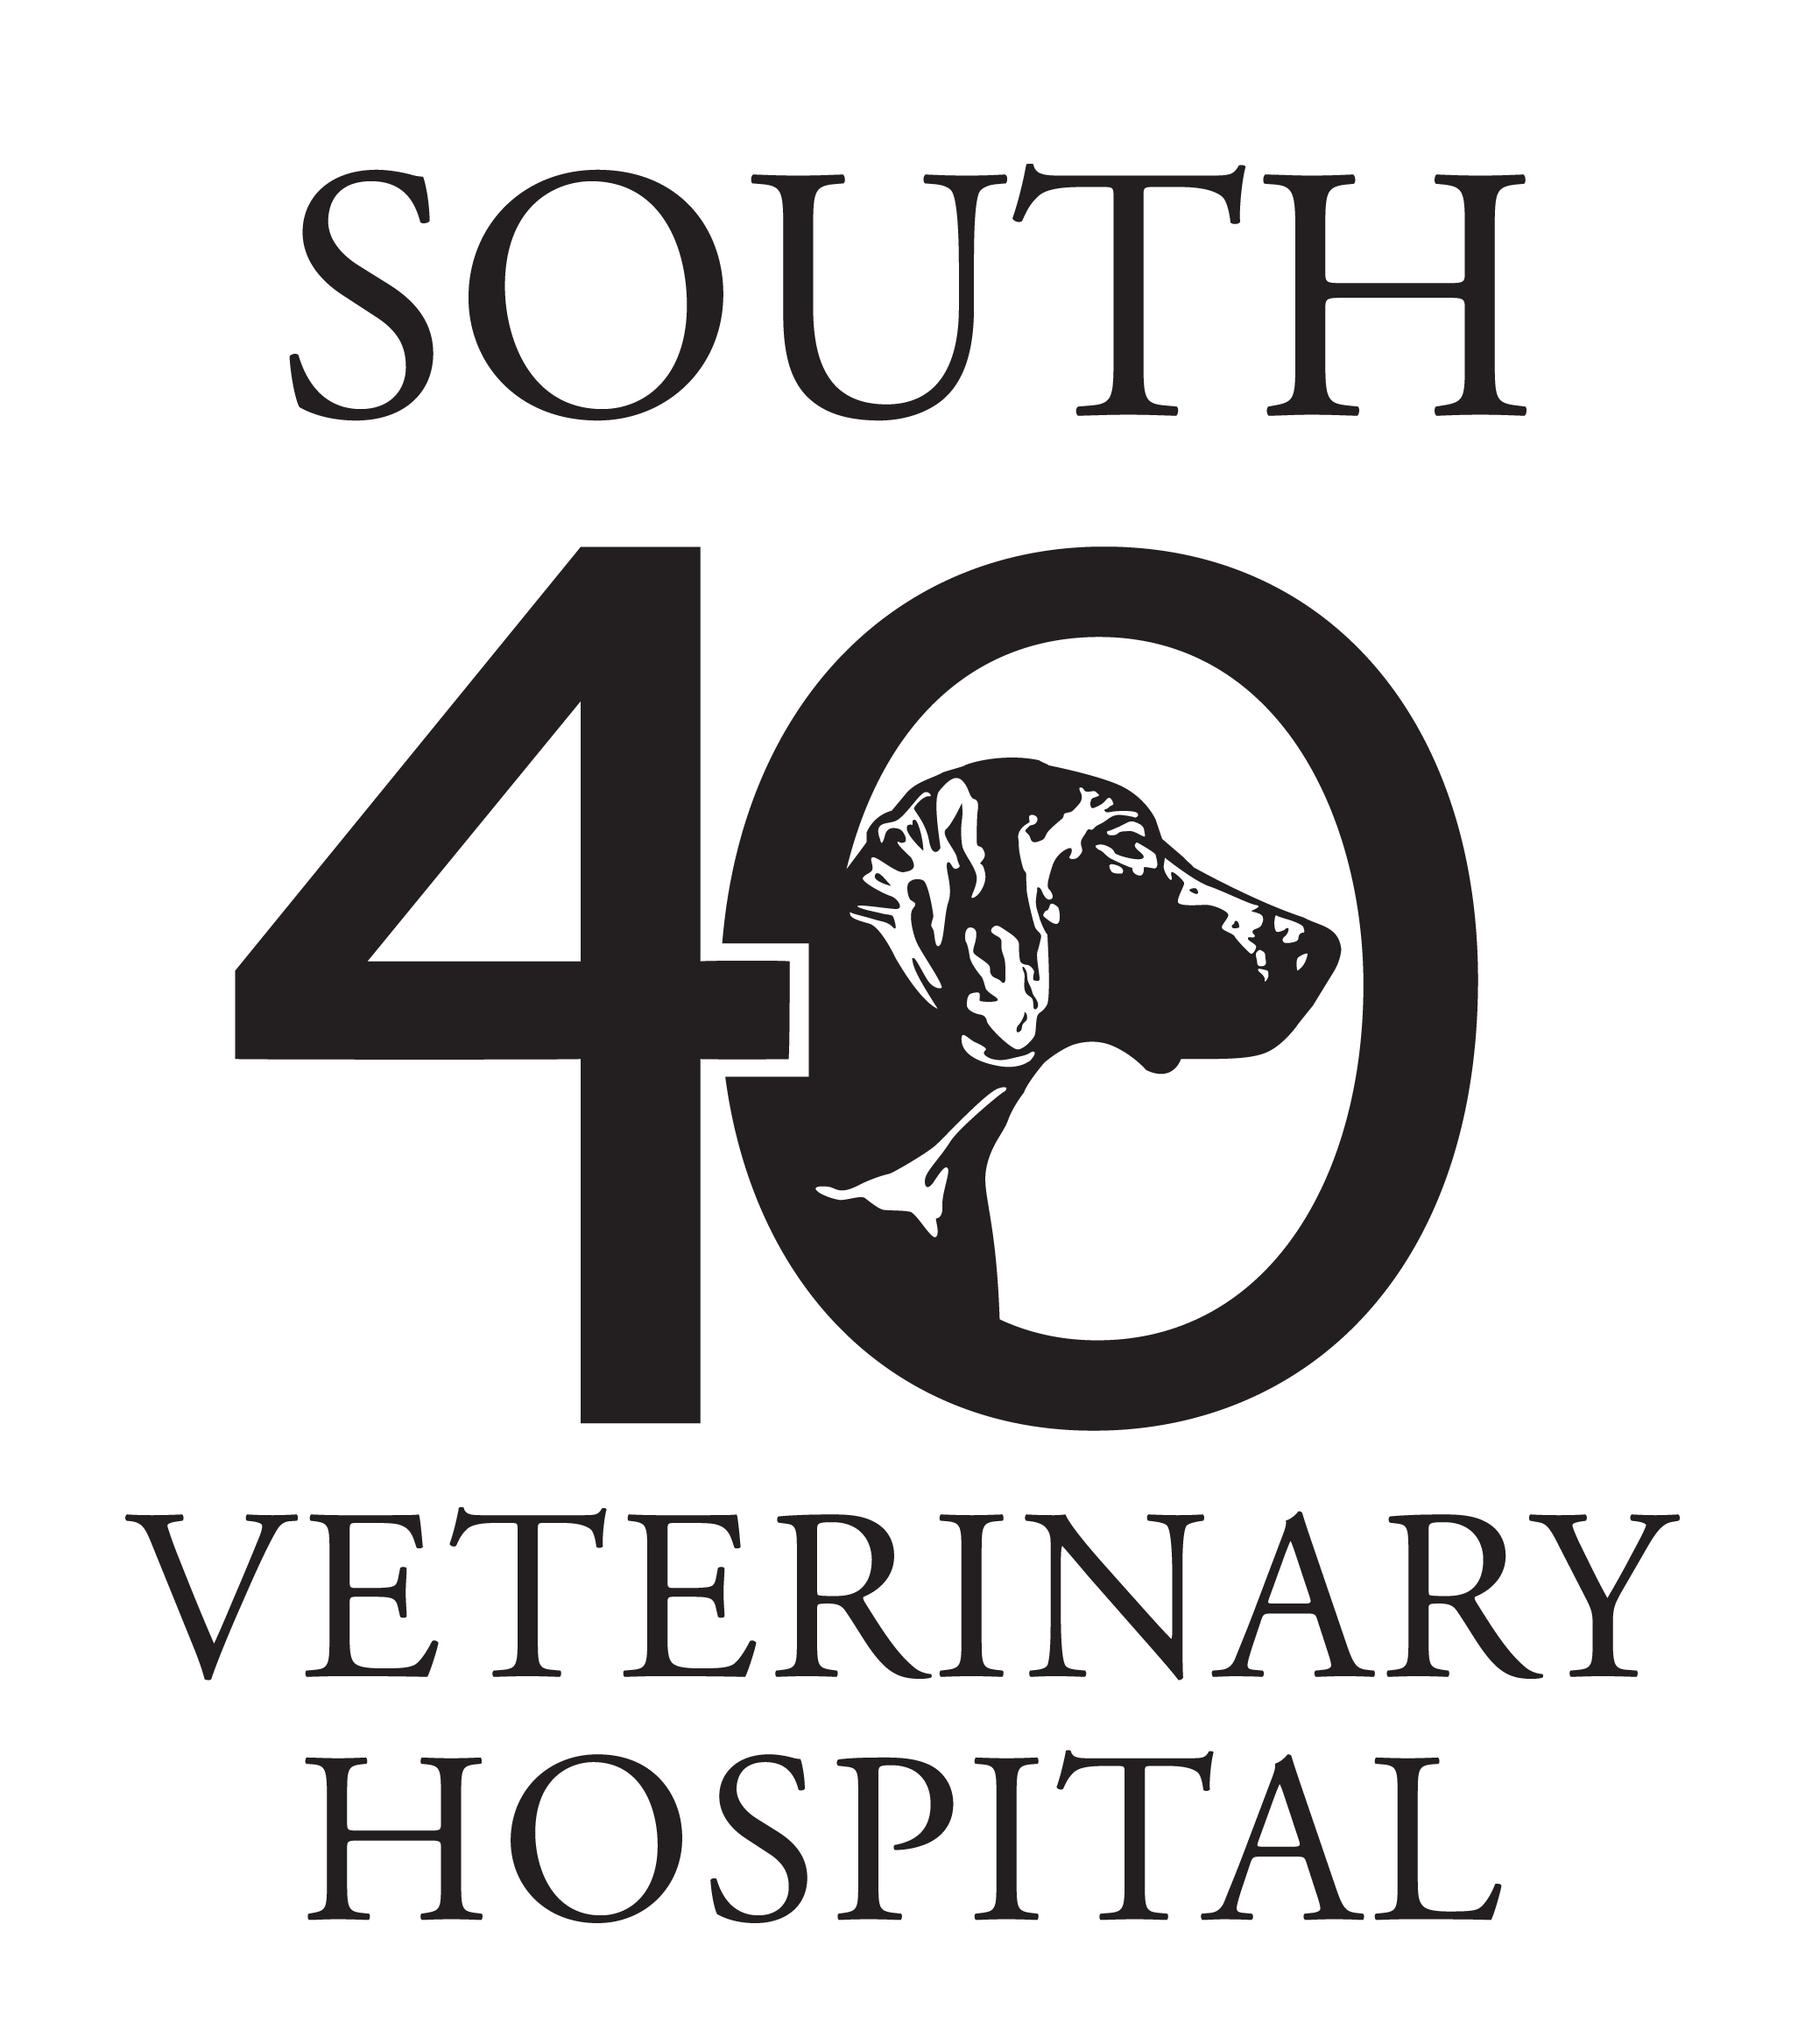 South 40 Veterinary Hospital